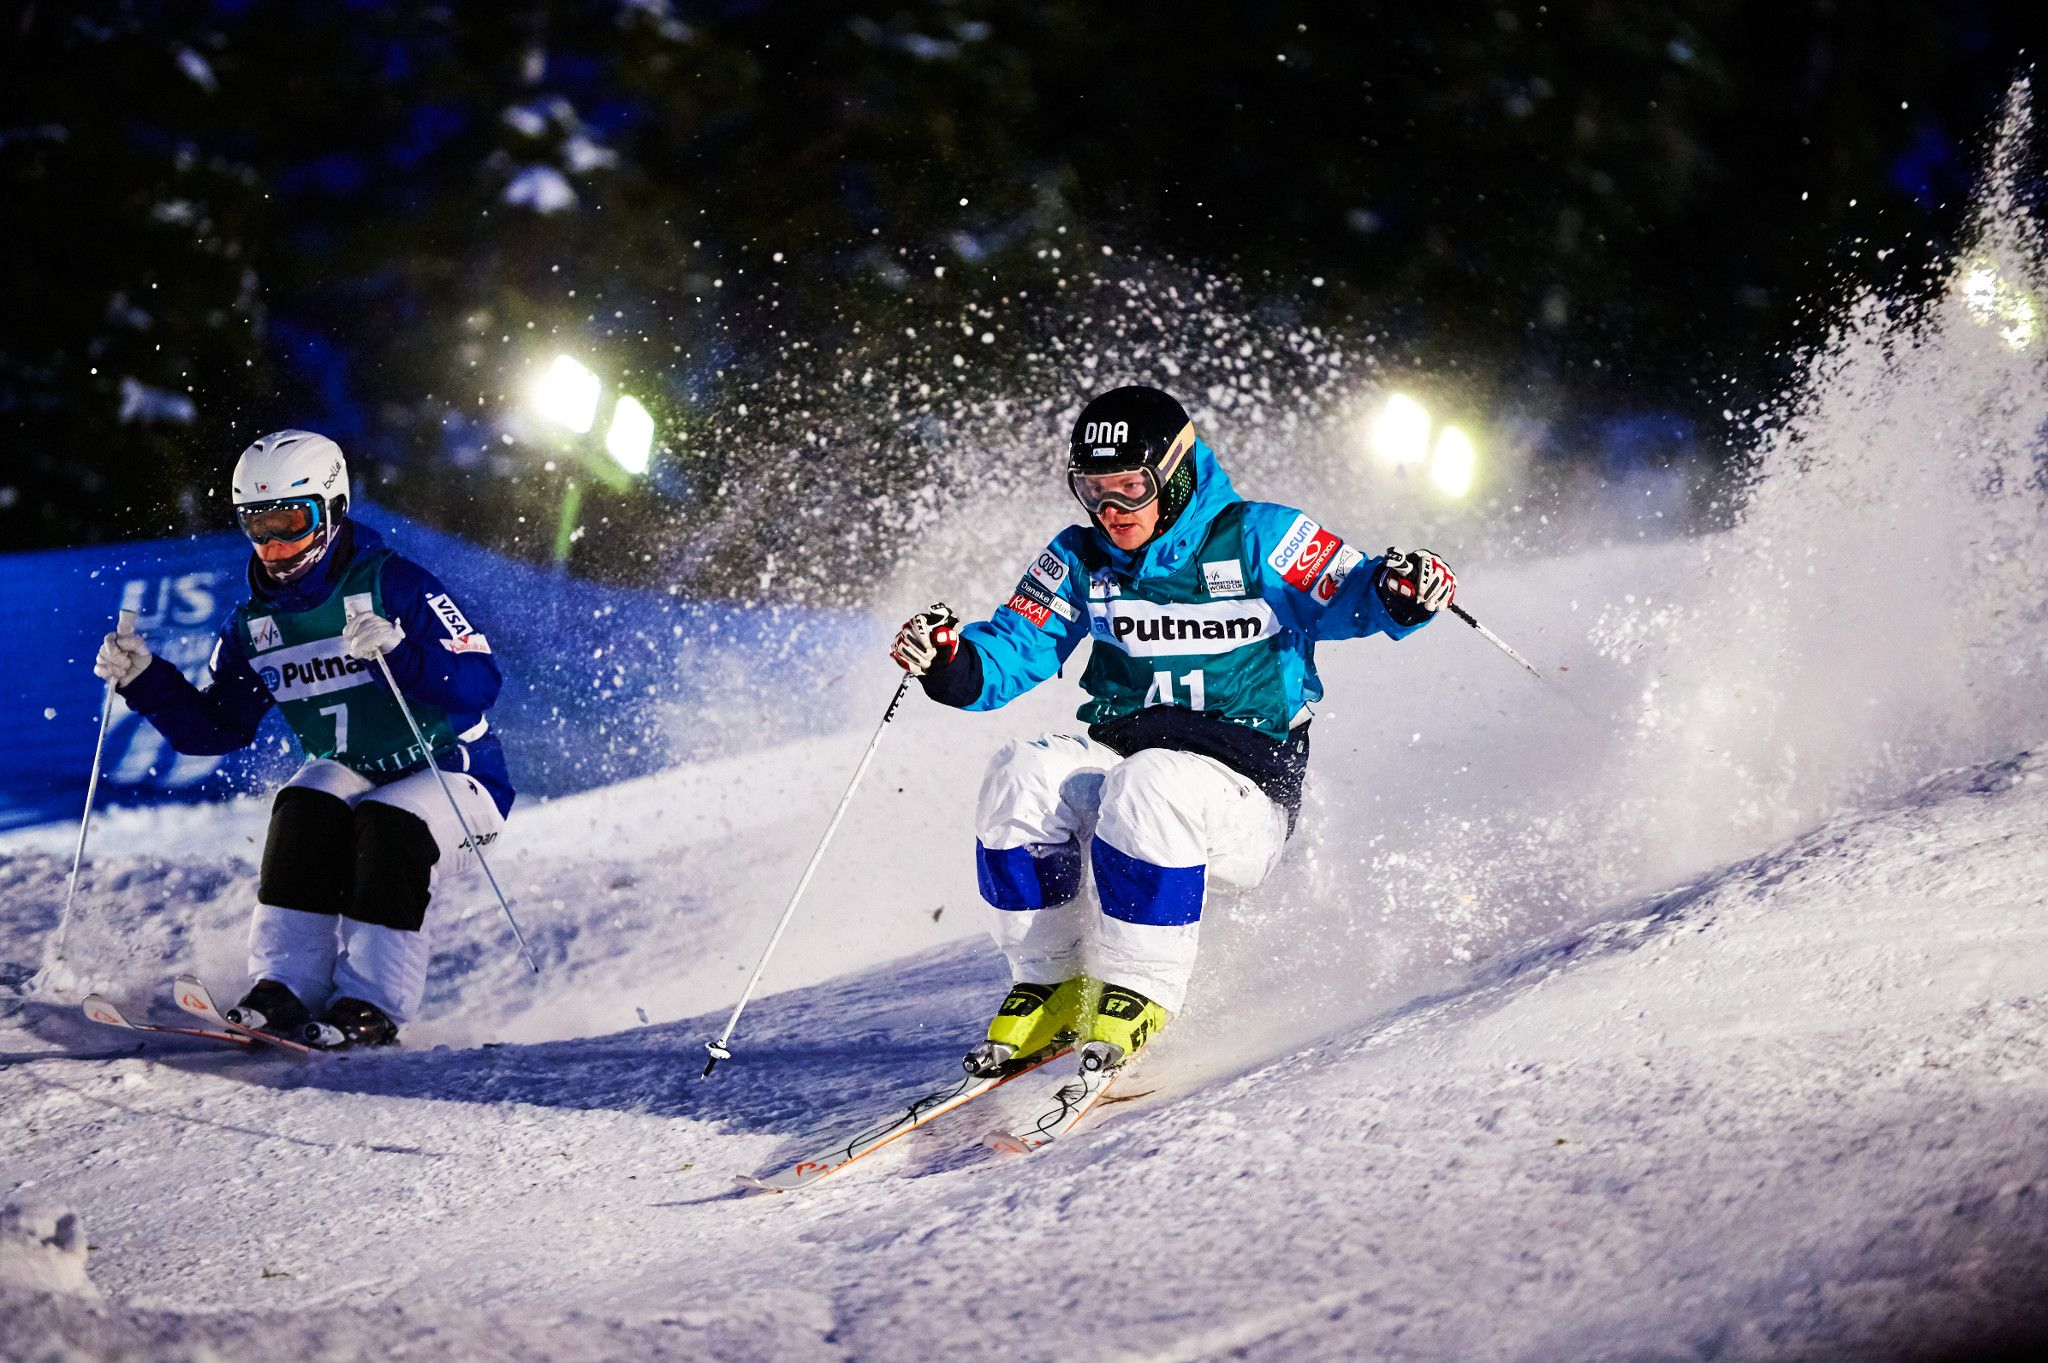 Two male skiers racing down Champion Ski Run at Deer Valley Resort.